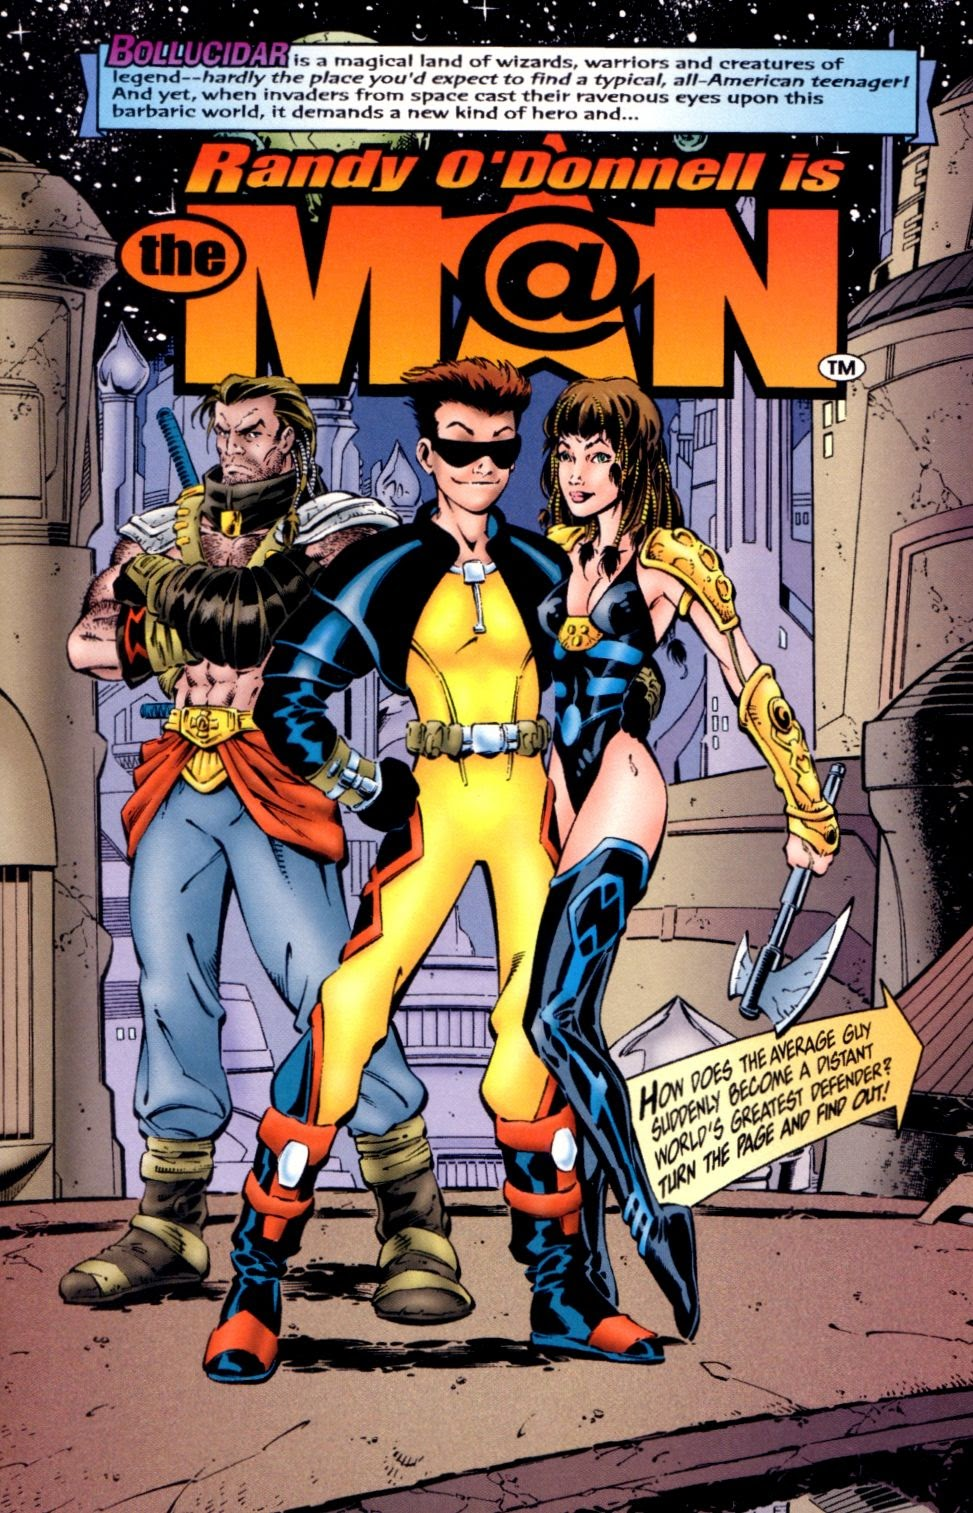 Read online Randy O'Donnell is The M@N comic -  Issue #1 - 3